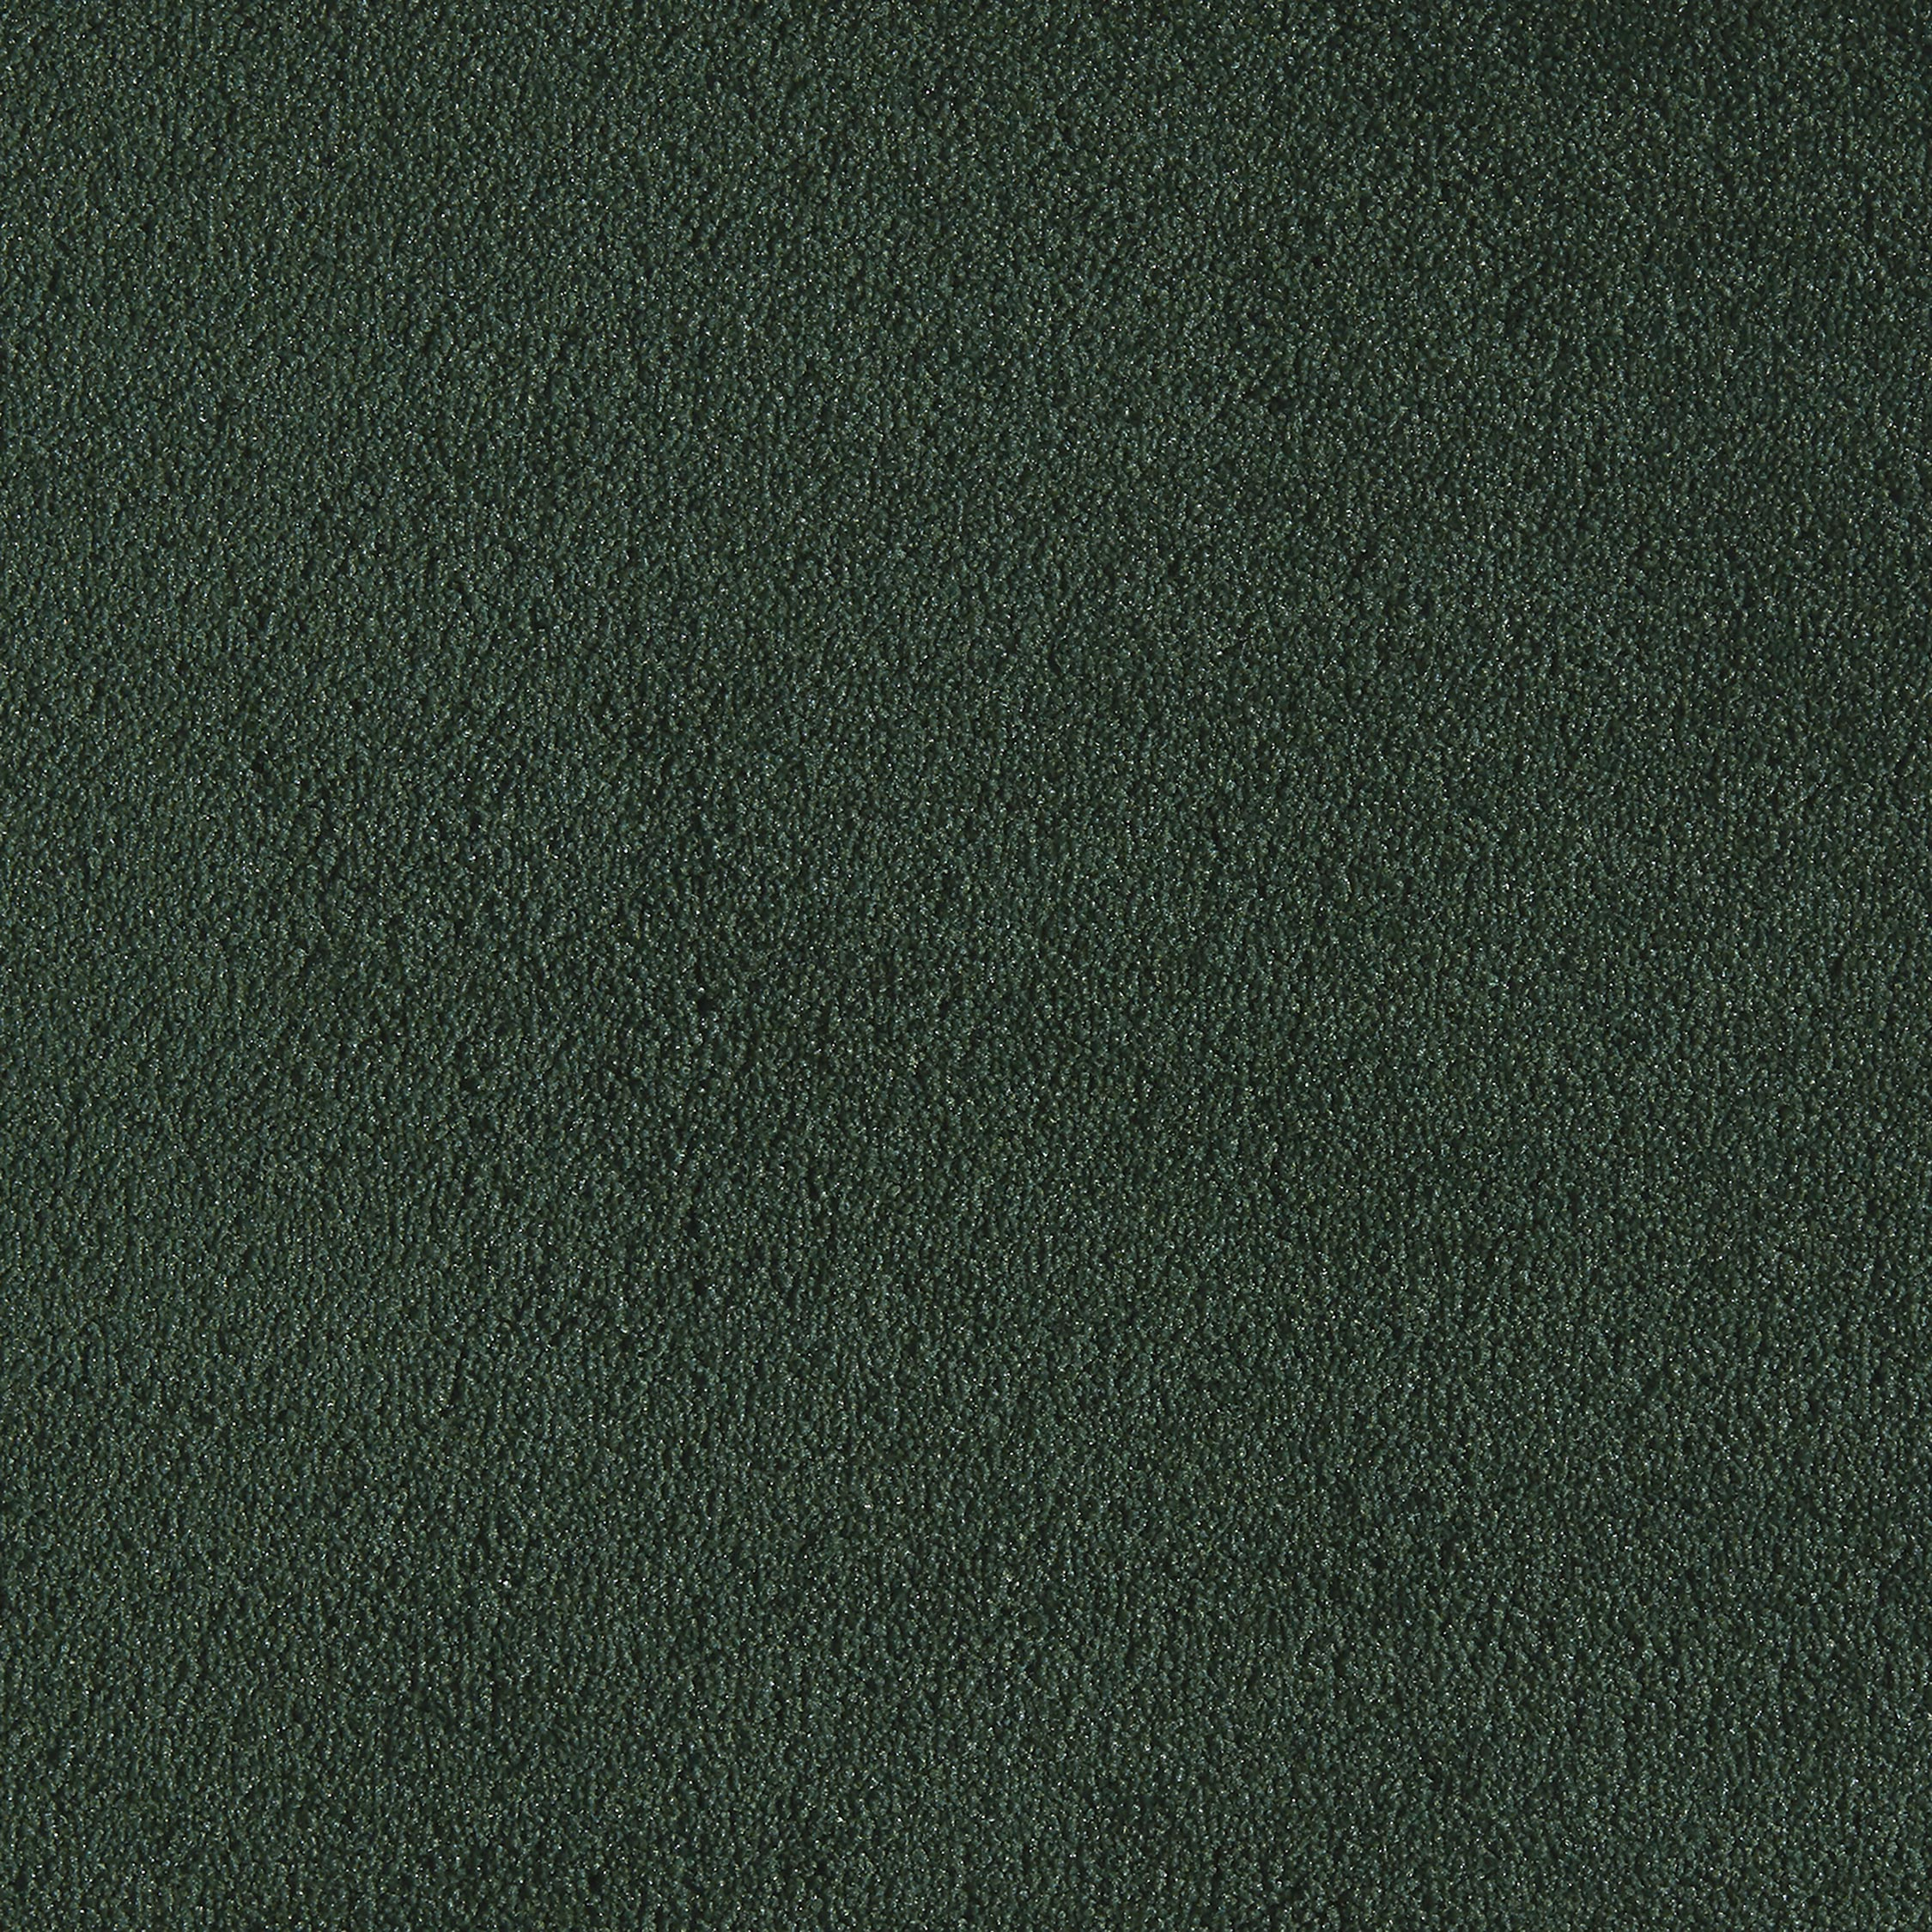 Texture 2000 wt emerald green